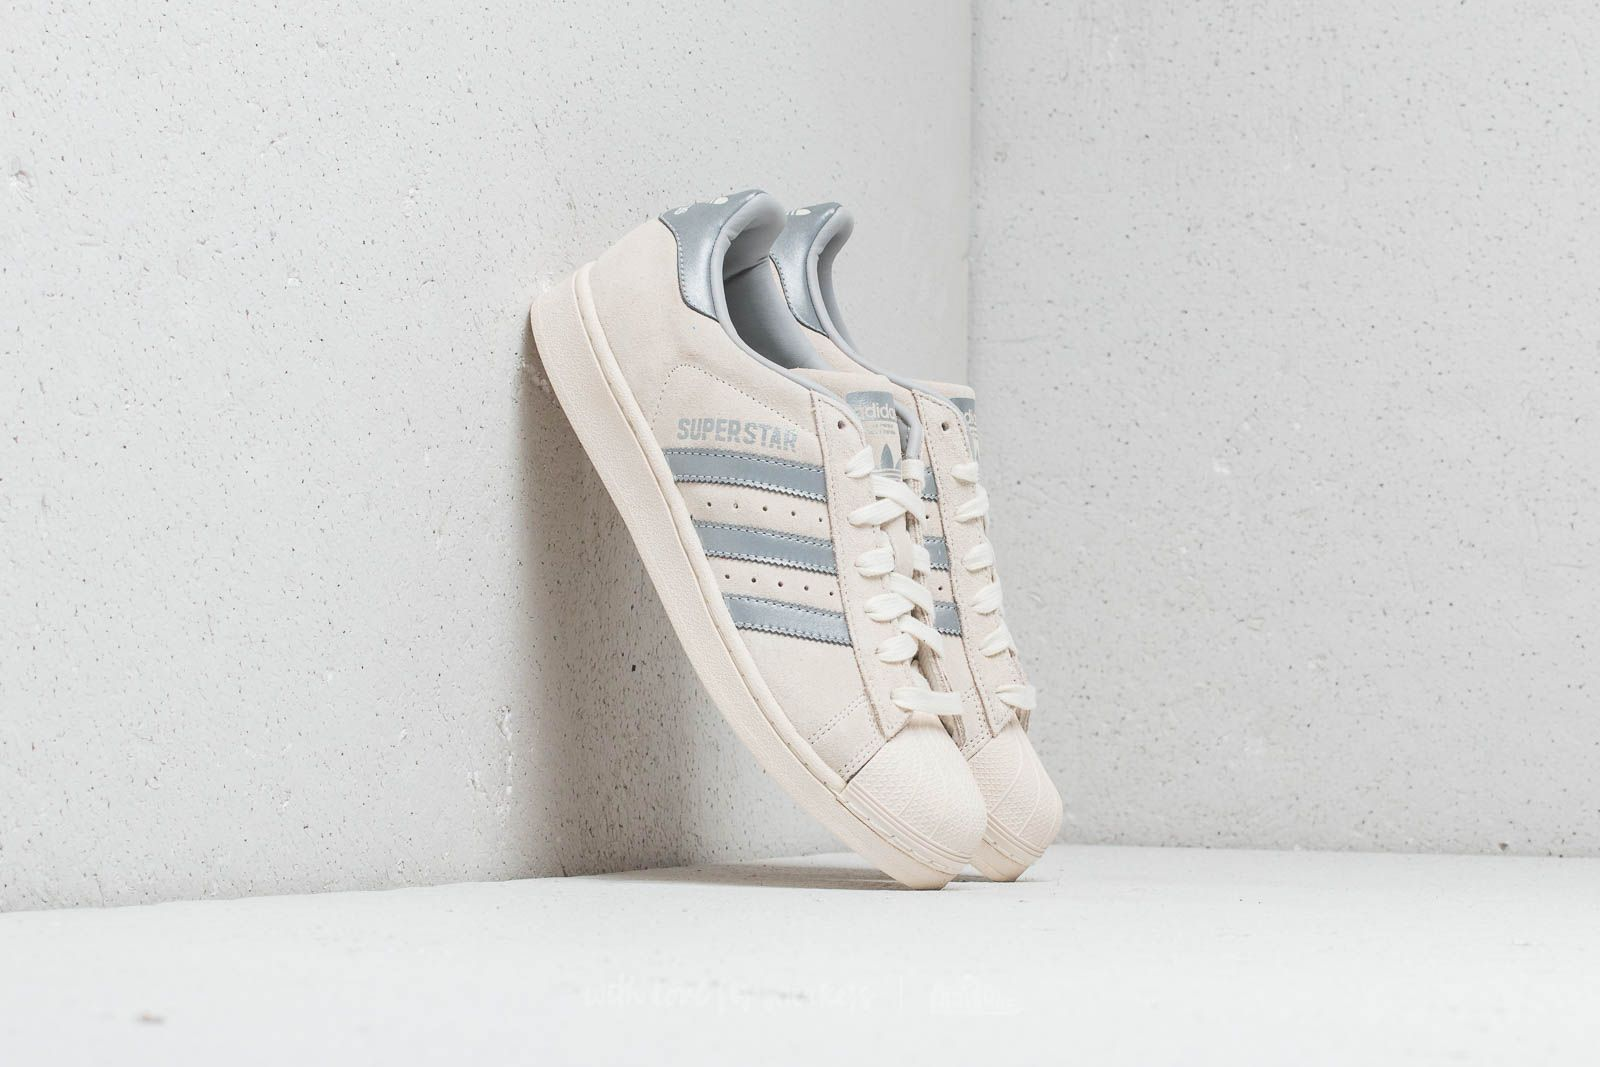 Adidas Superstar Off White Supplier Colour At A Great Price 63